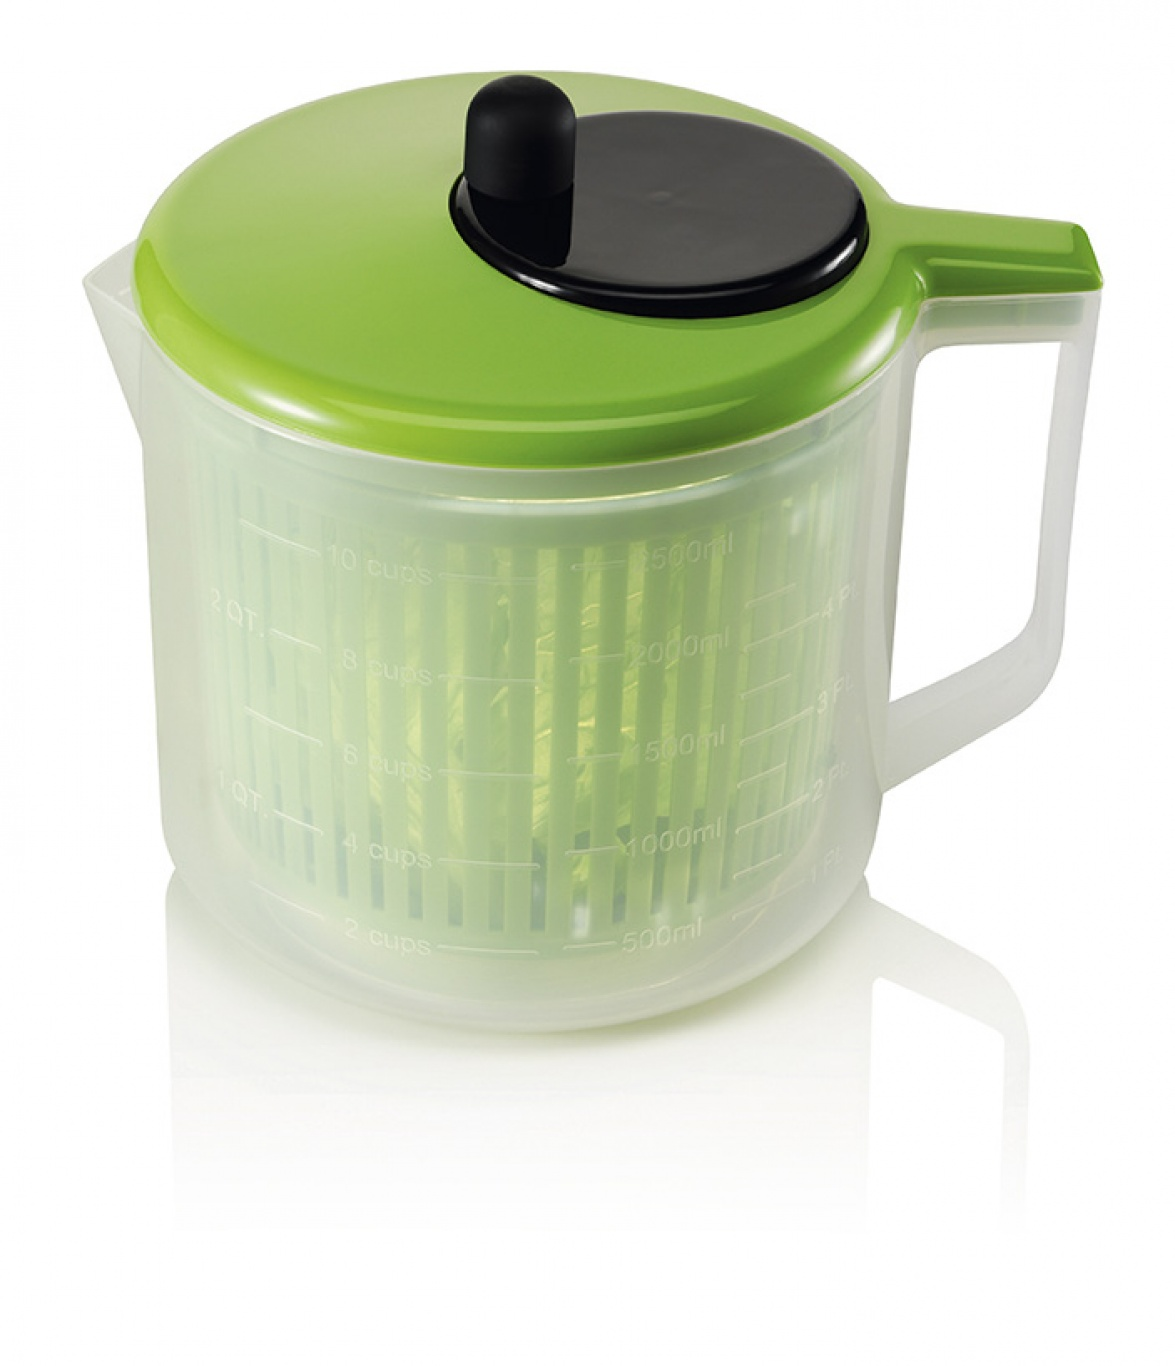 Image of Zeal Multi Purpose Salad Spinner